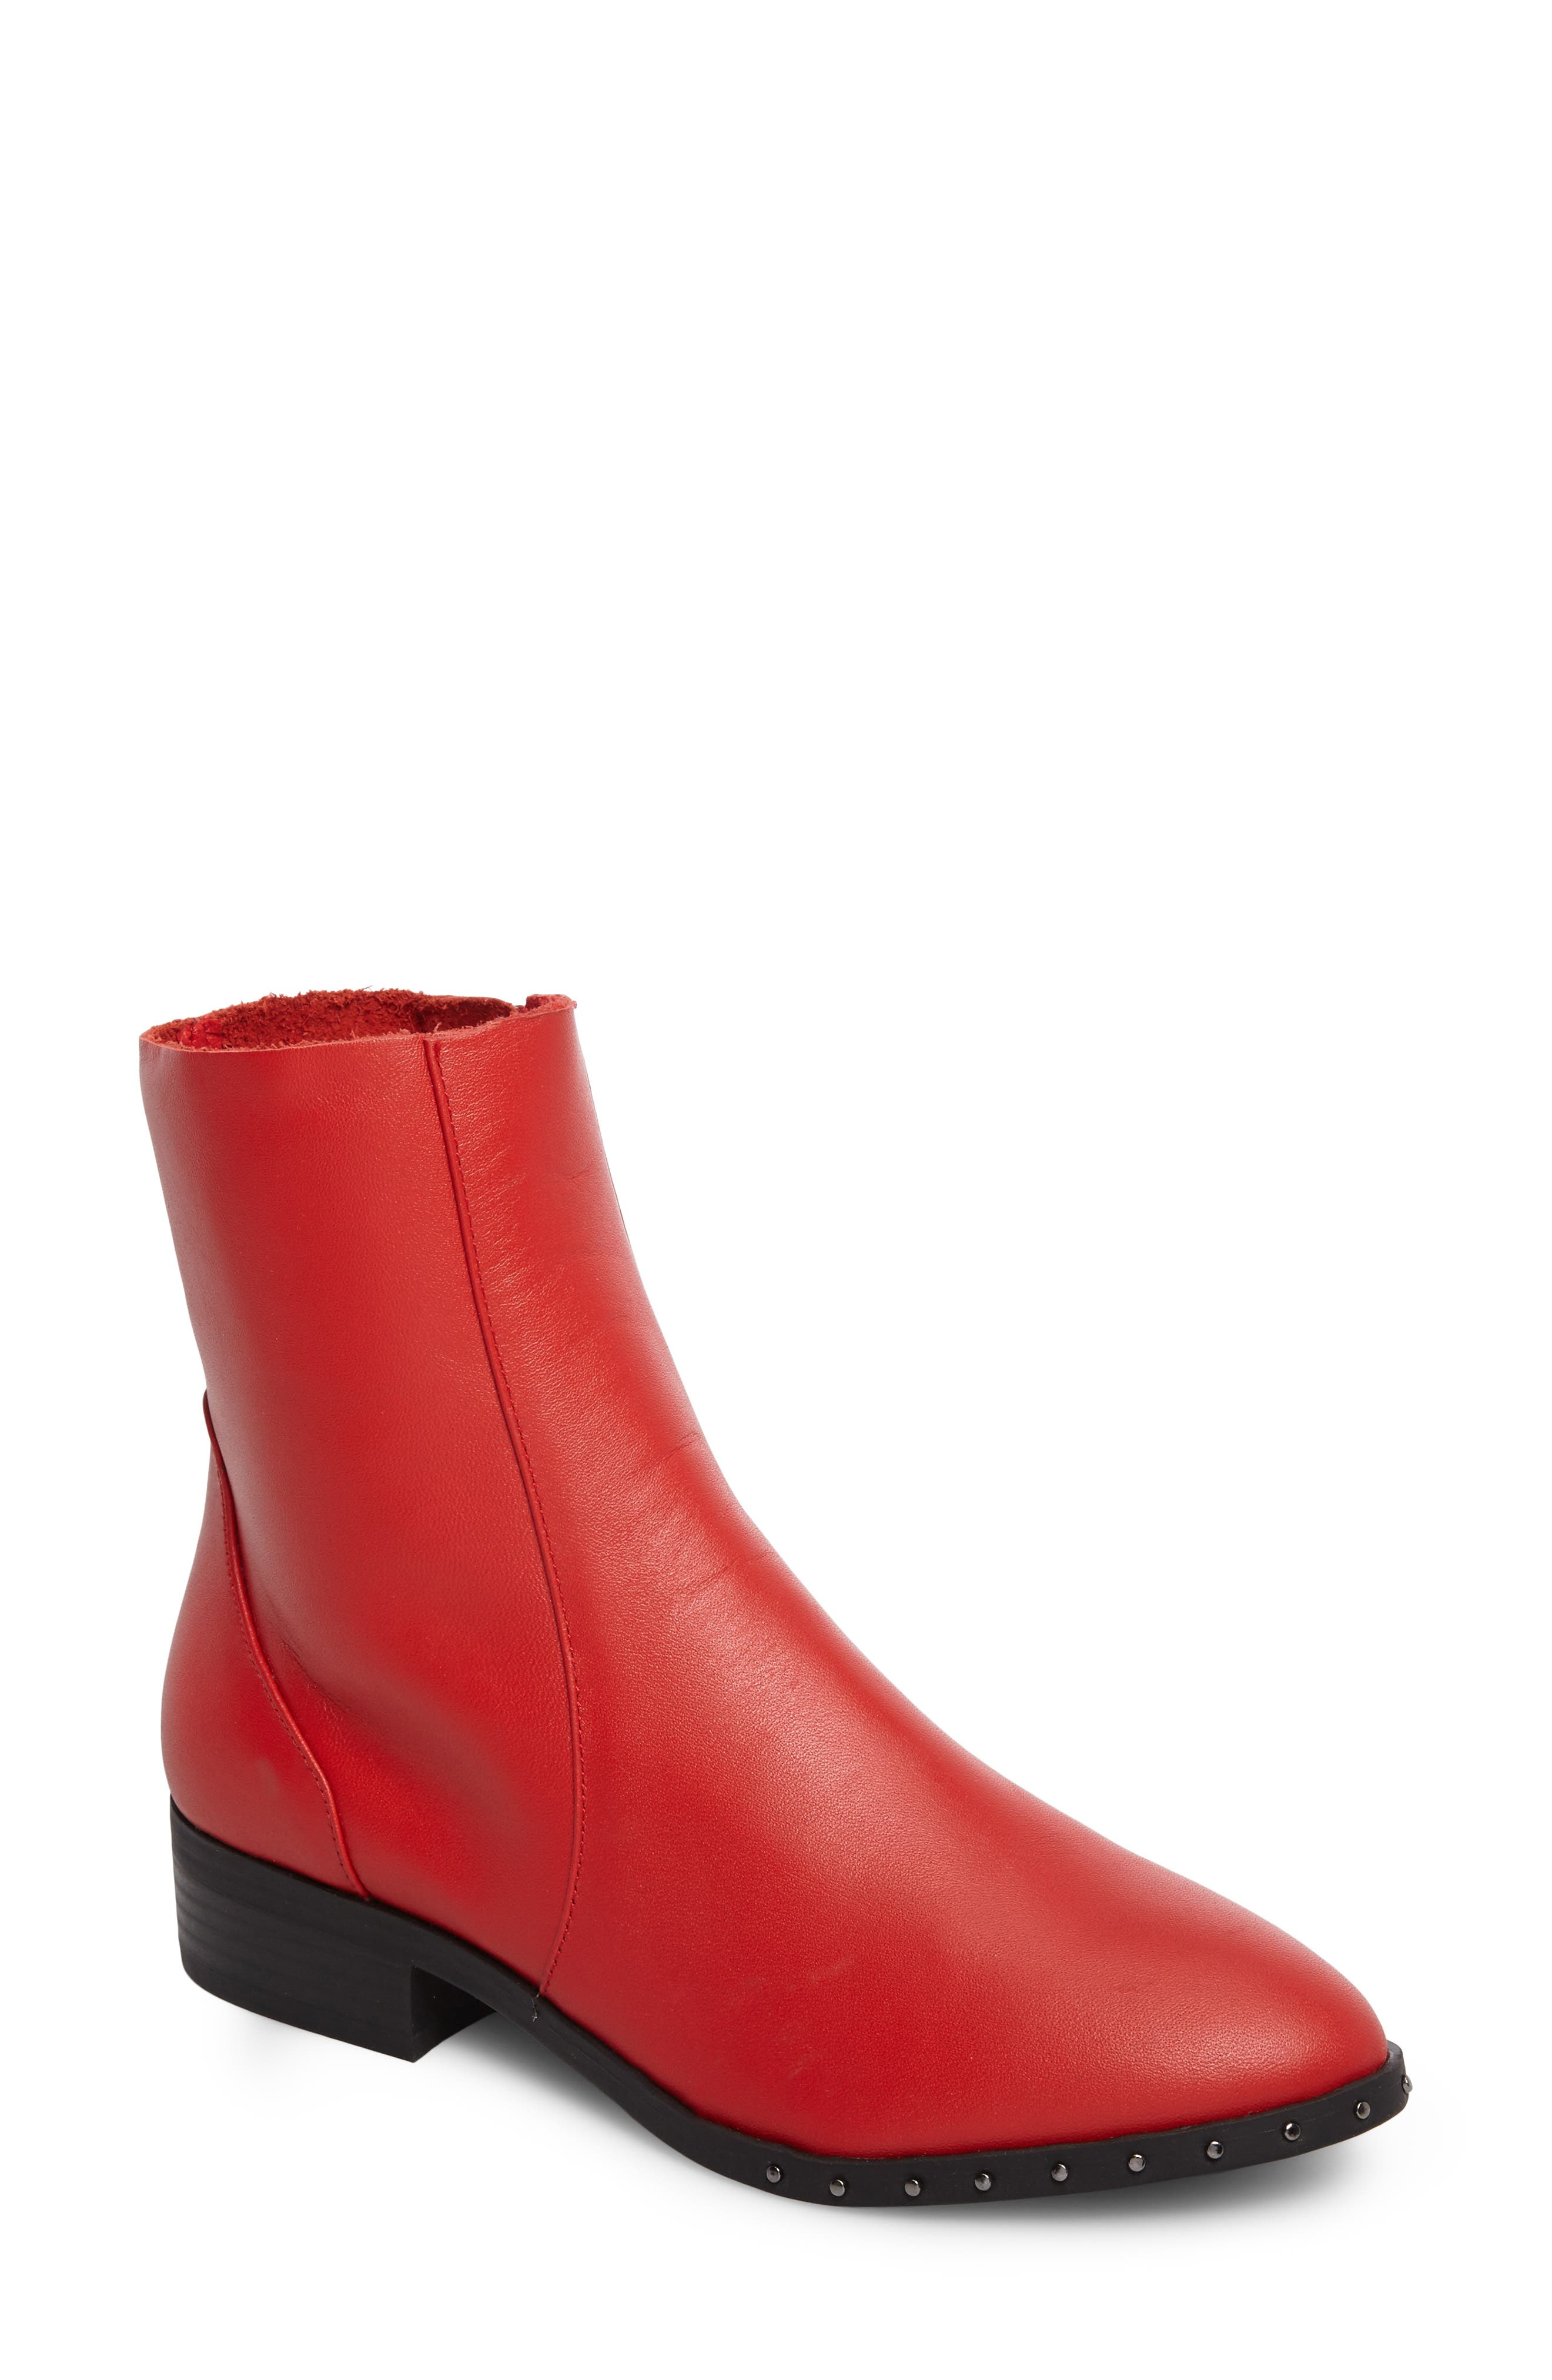 Kash Sock Boot,                         Main,                         color, Red